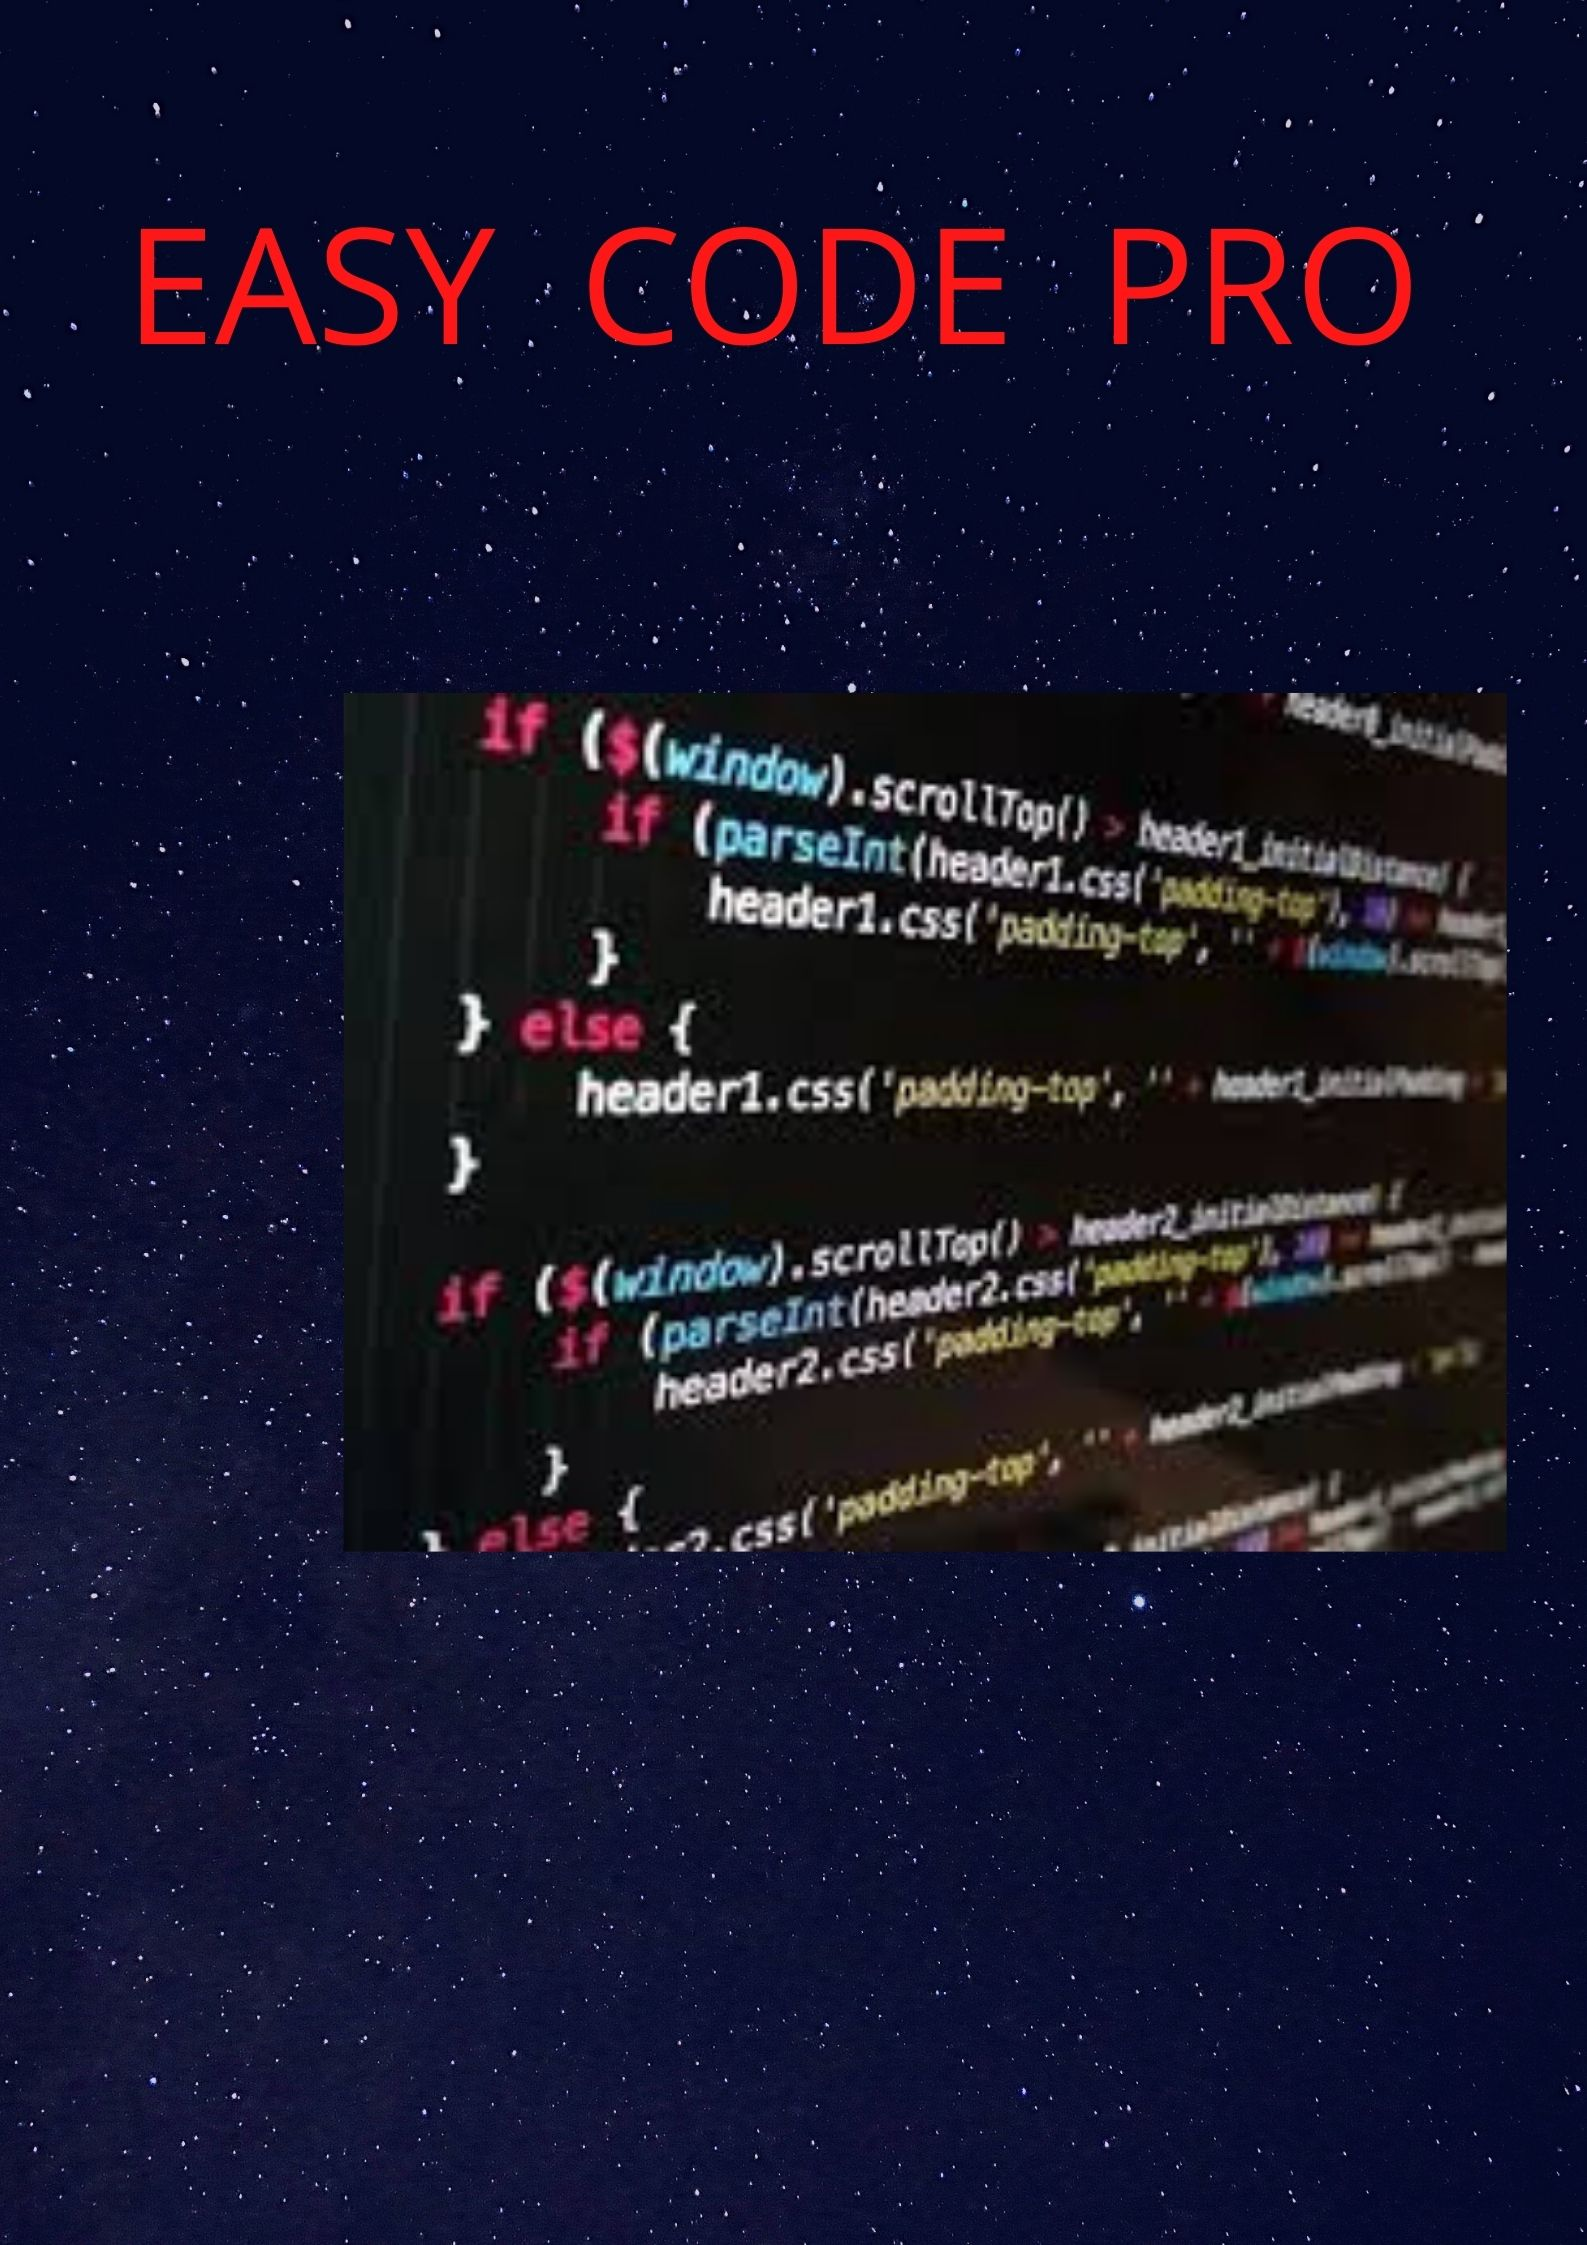 Easy code pro for analytic your website.